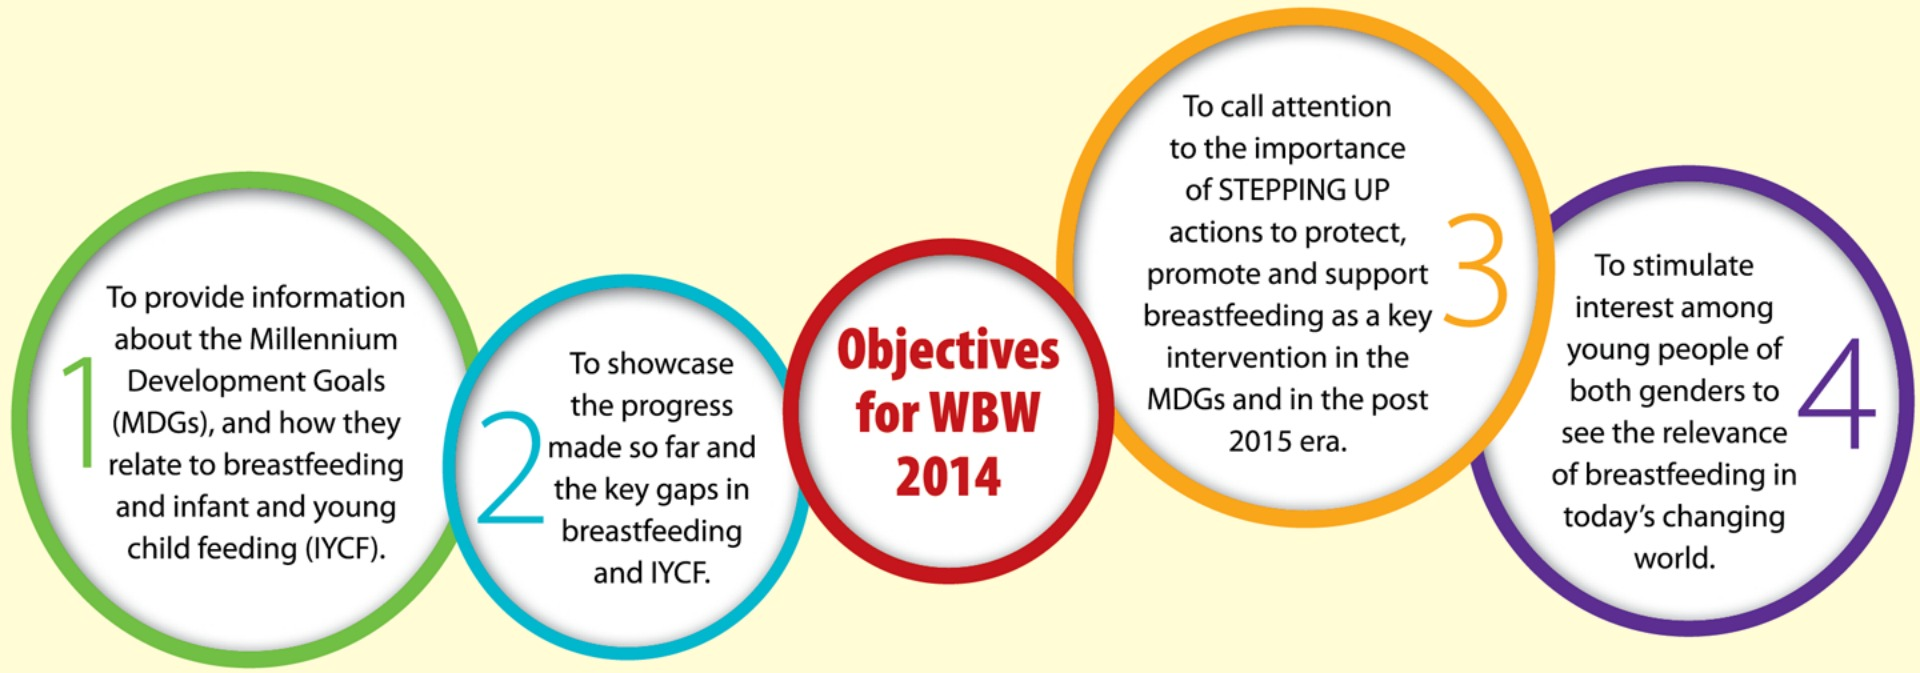 Promoting World Breastfeeding Week